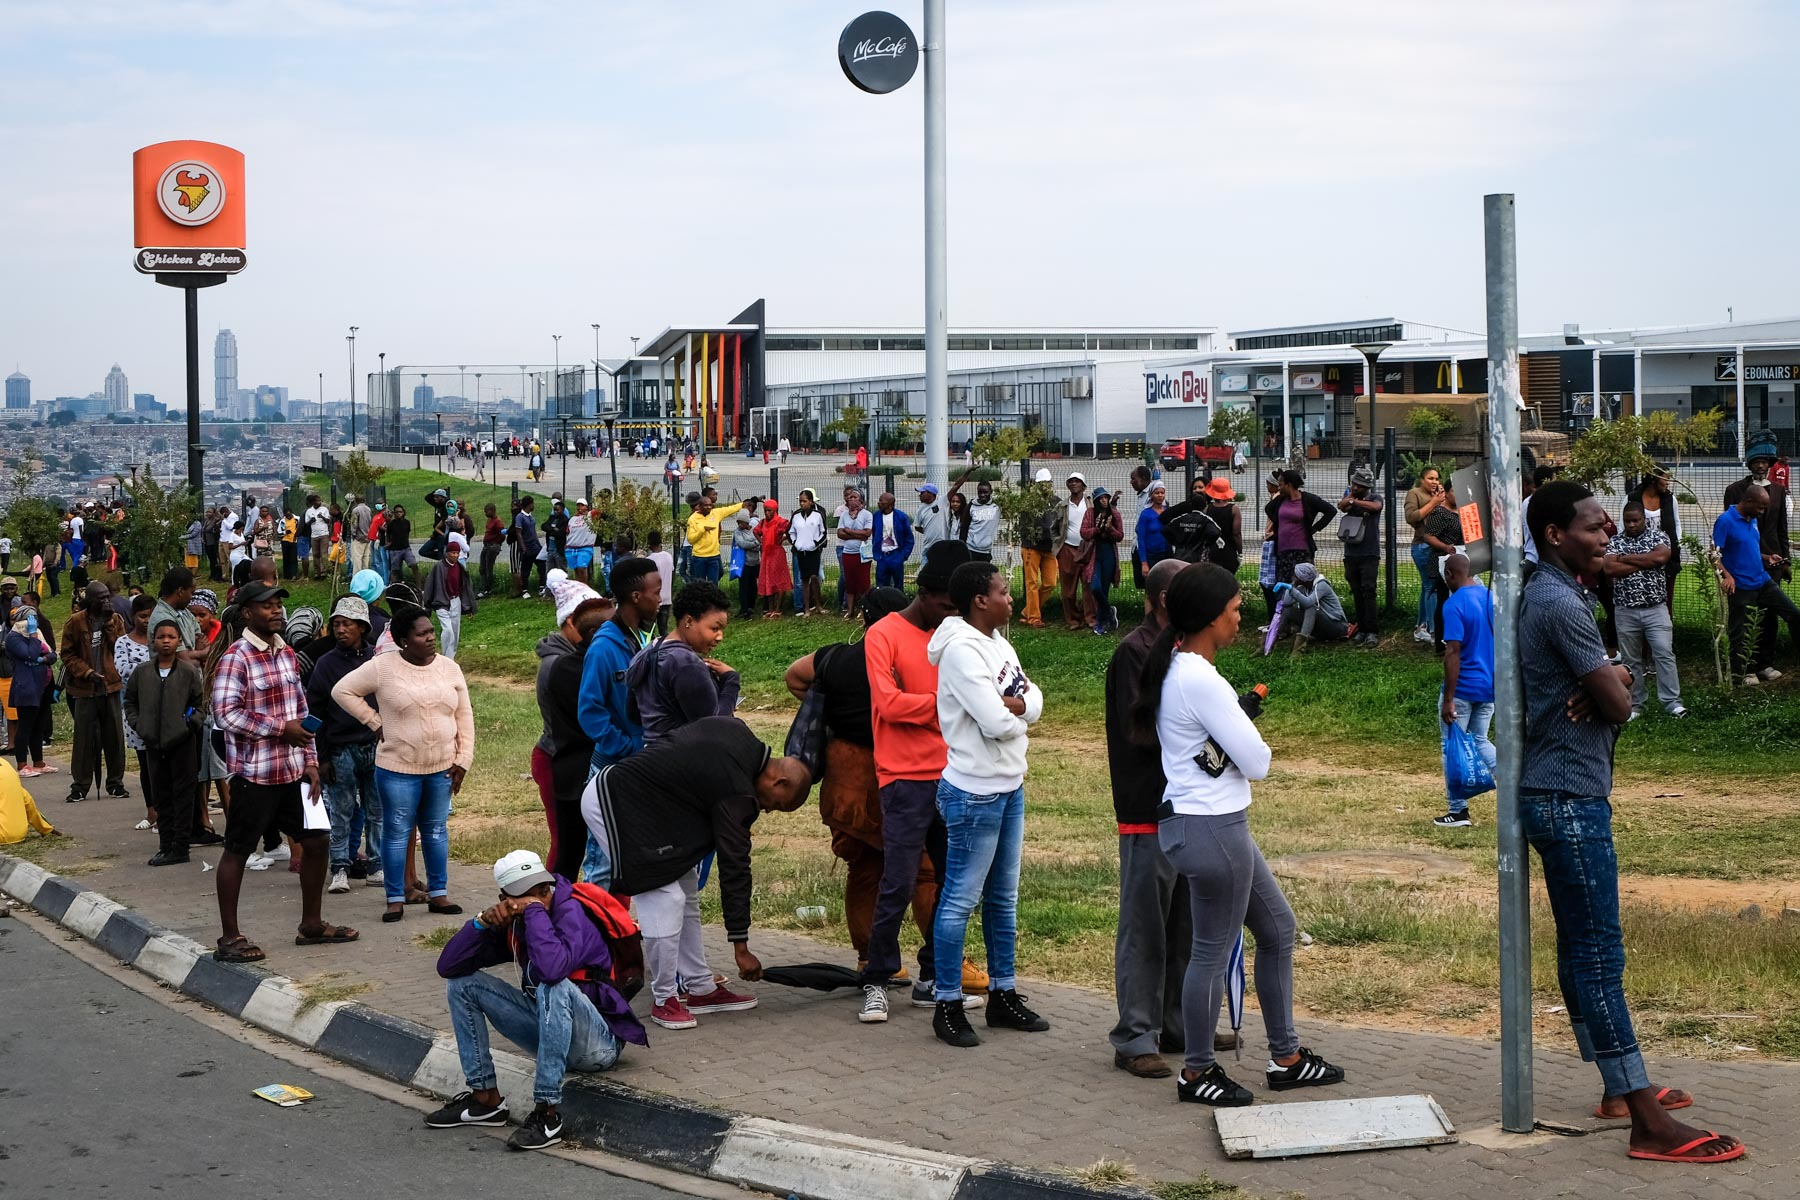 1 April 2020: Residents queue outside the Alex mall.